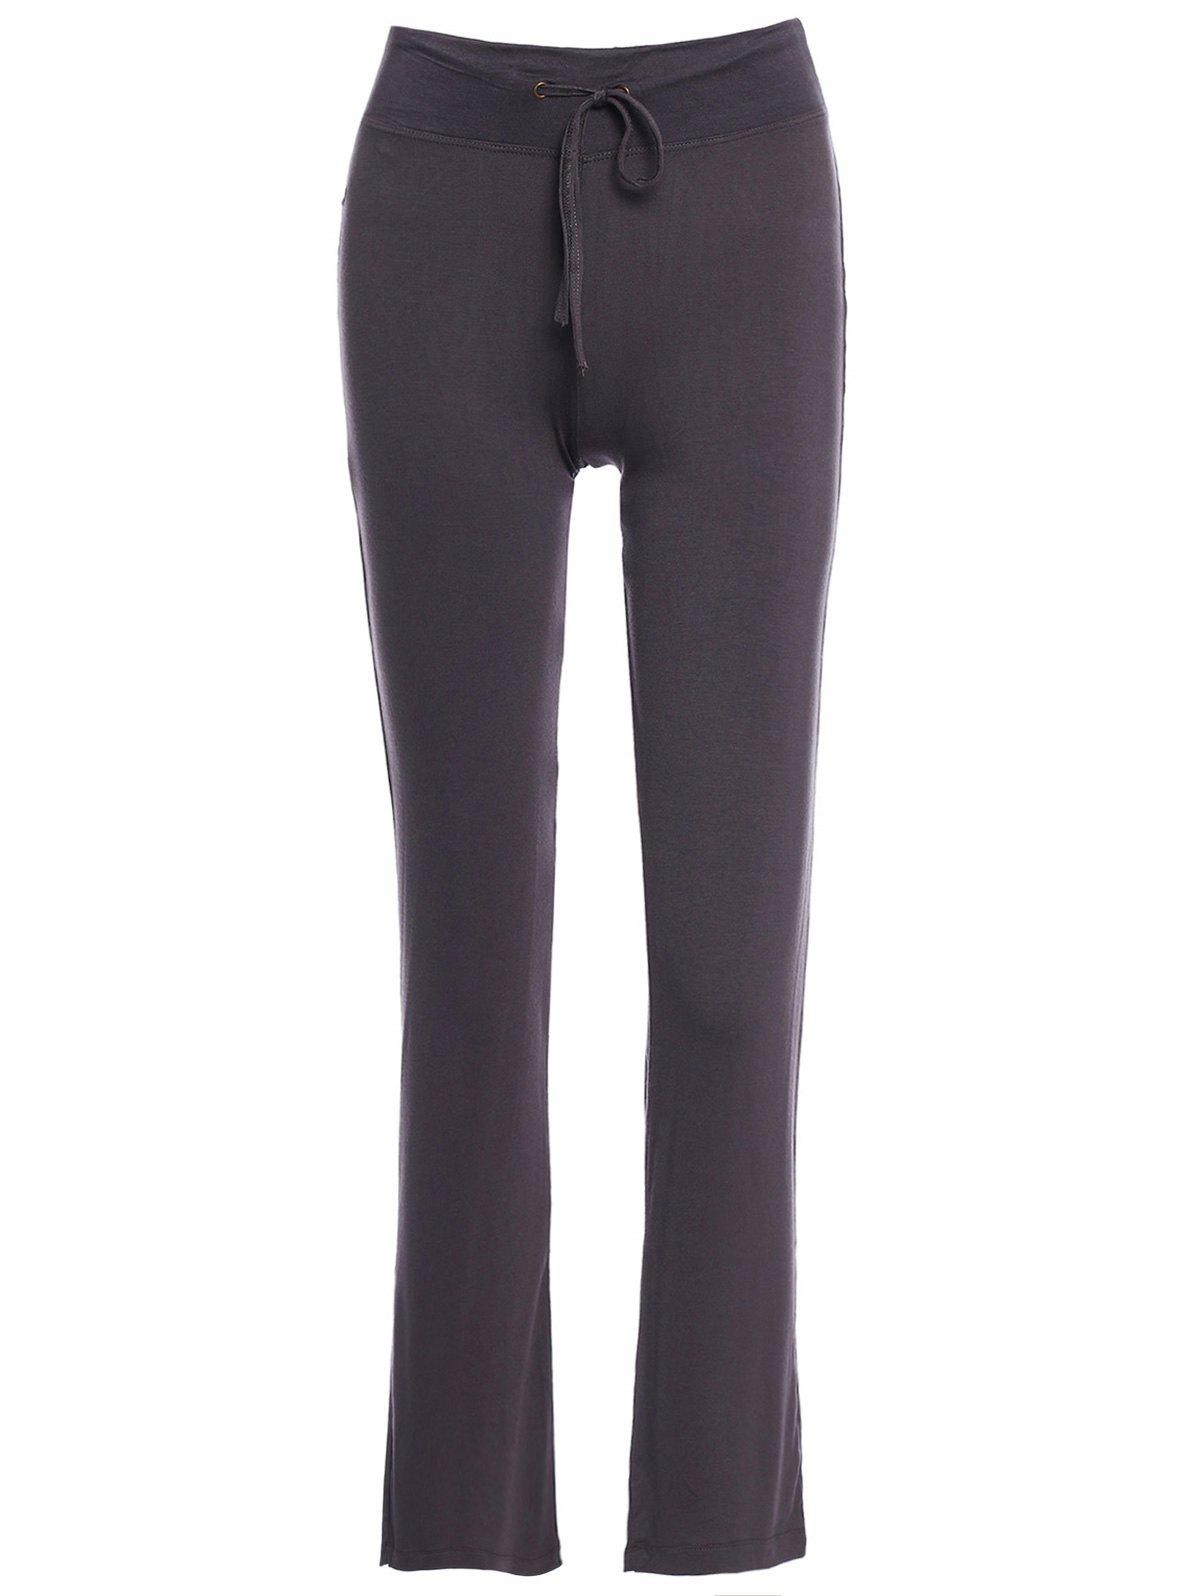 Women's Trendy Solid Color Drawstring Yoga Pants - DEEP GRAY M